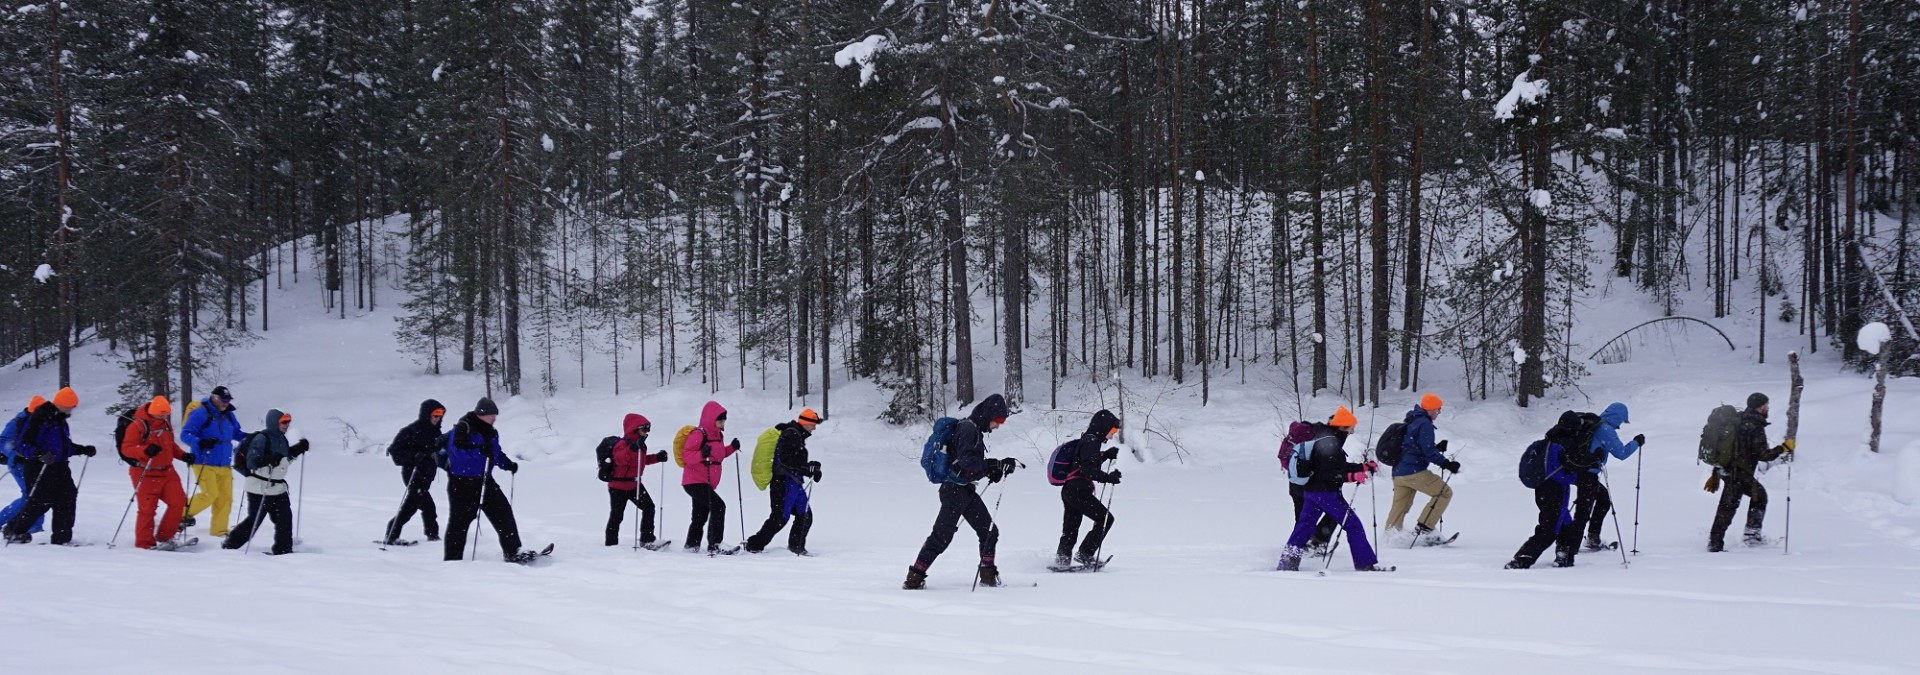 Snow-shoeing in a magical wonderland